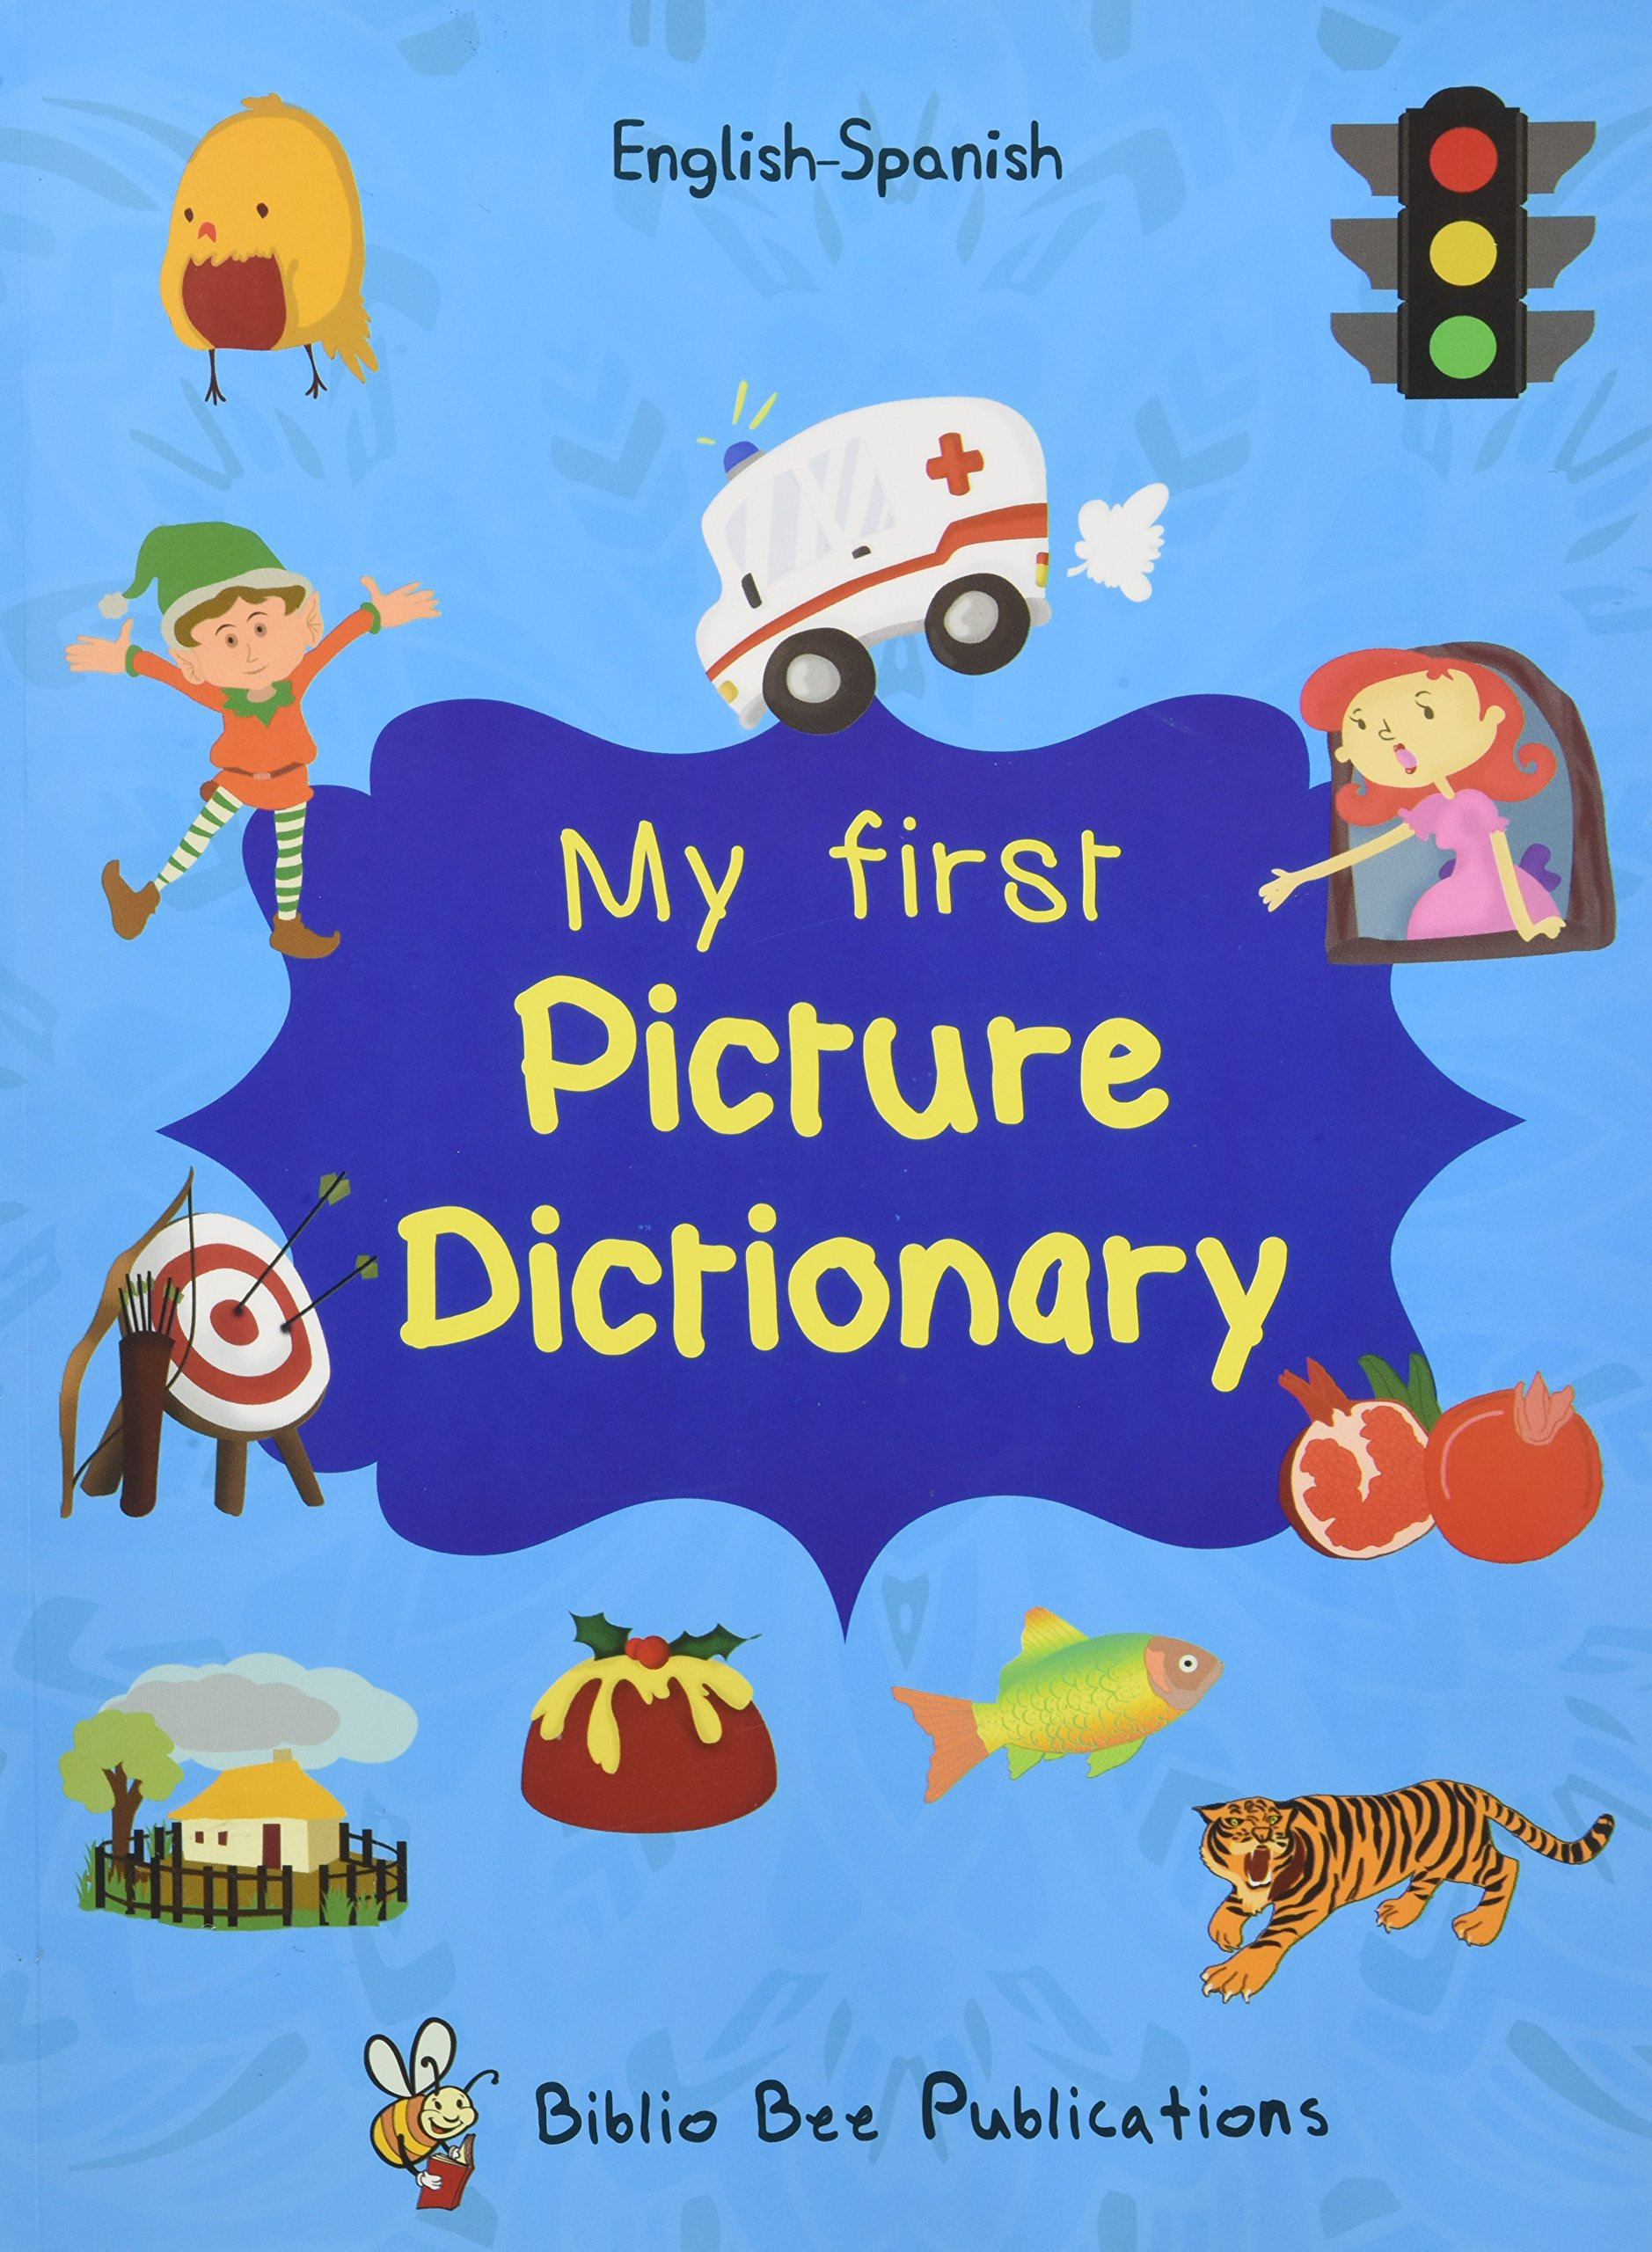 My First Picture Dictionary: English-Spanish with Over 1000 Words 2016 (Spanish Edition) ebook